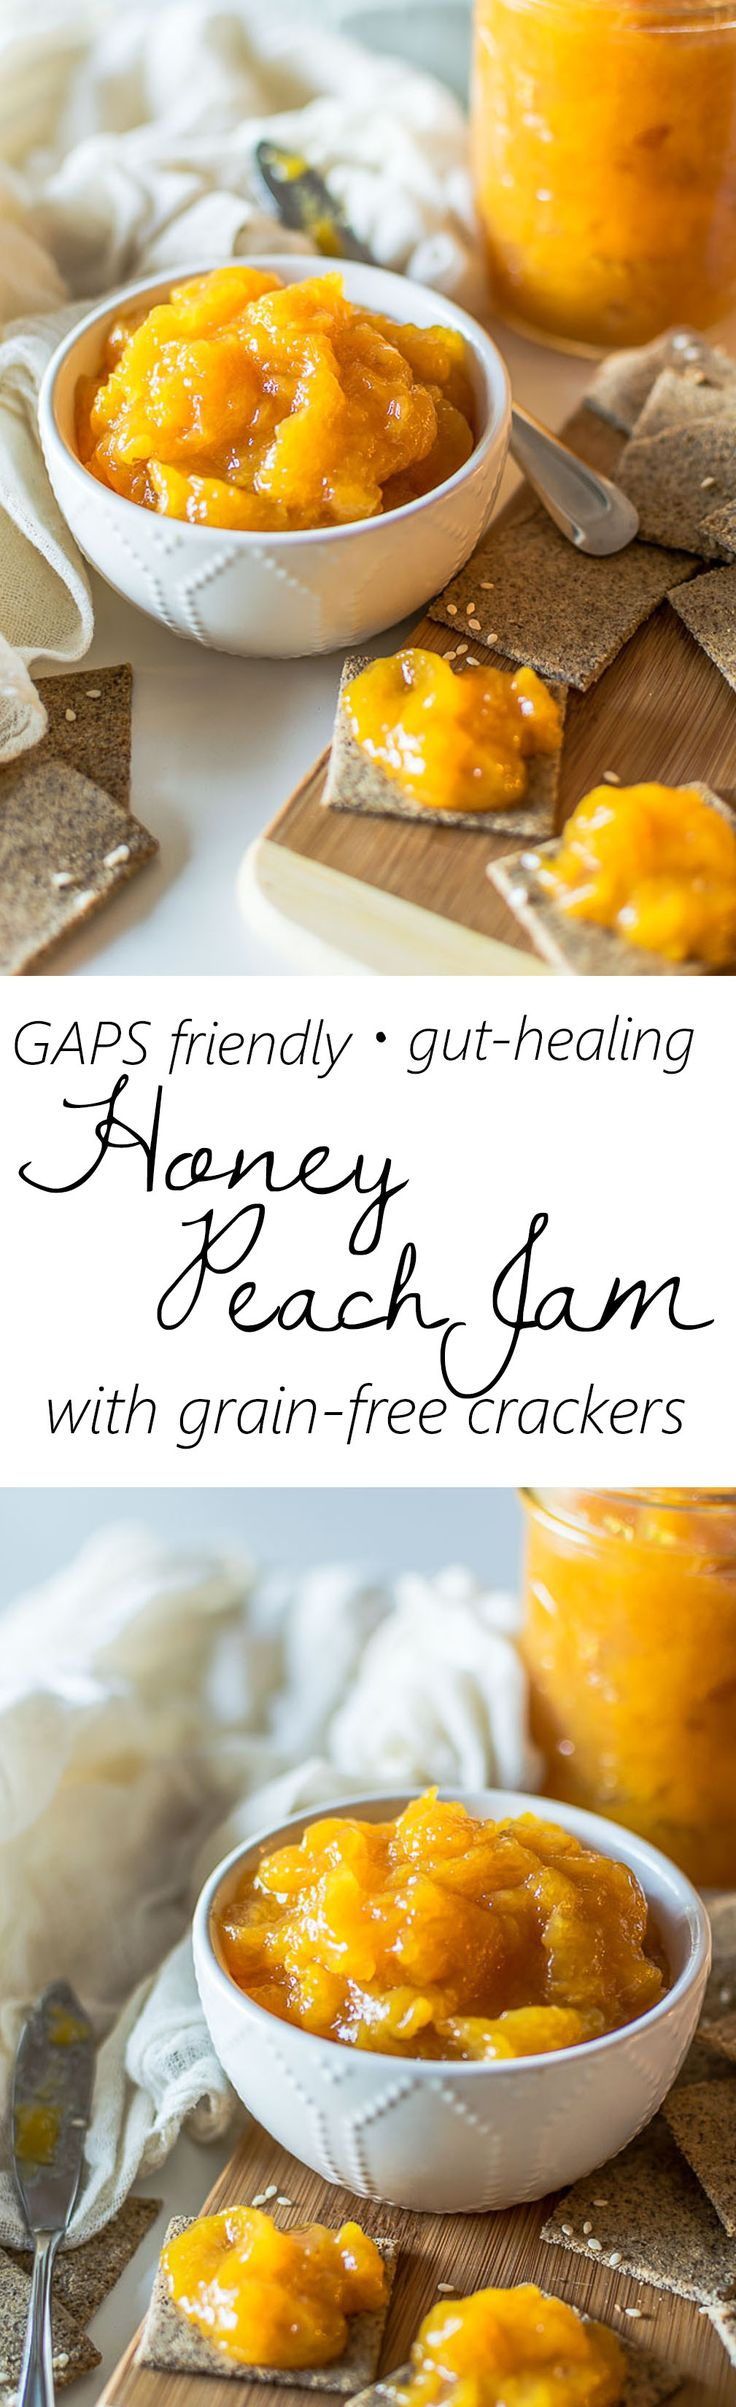 Refined sugar free jam with just peaches, honey, and gut-healing gelatin. Easy to make and delicious!